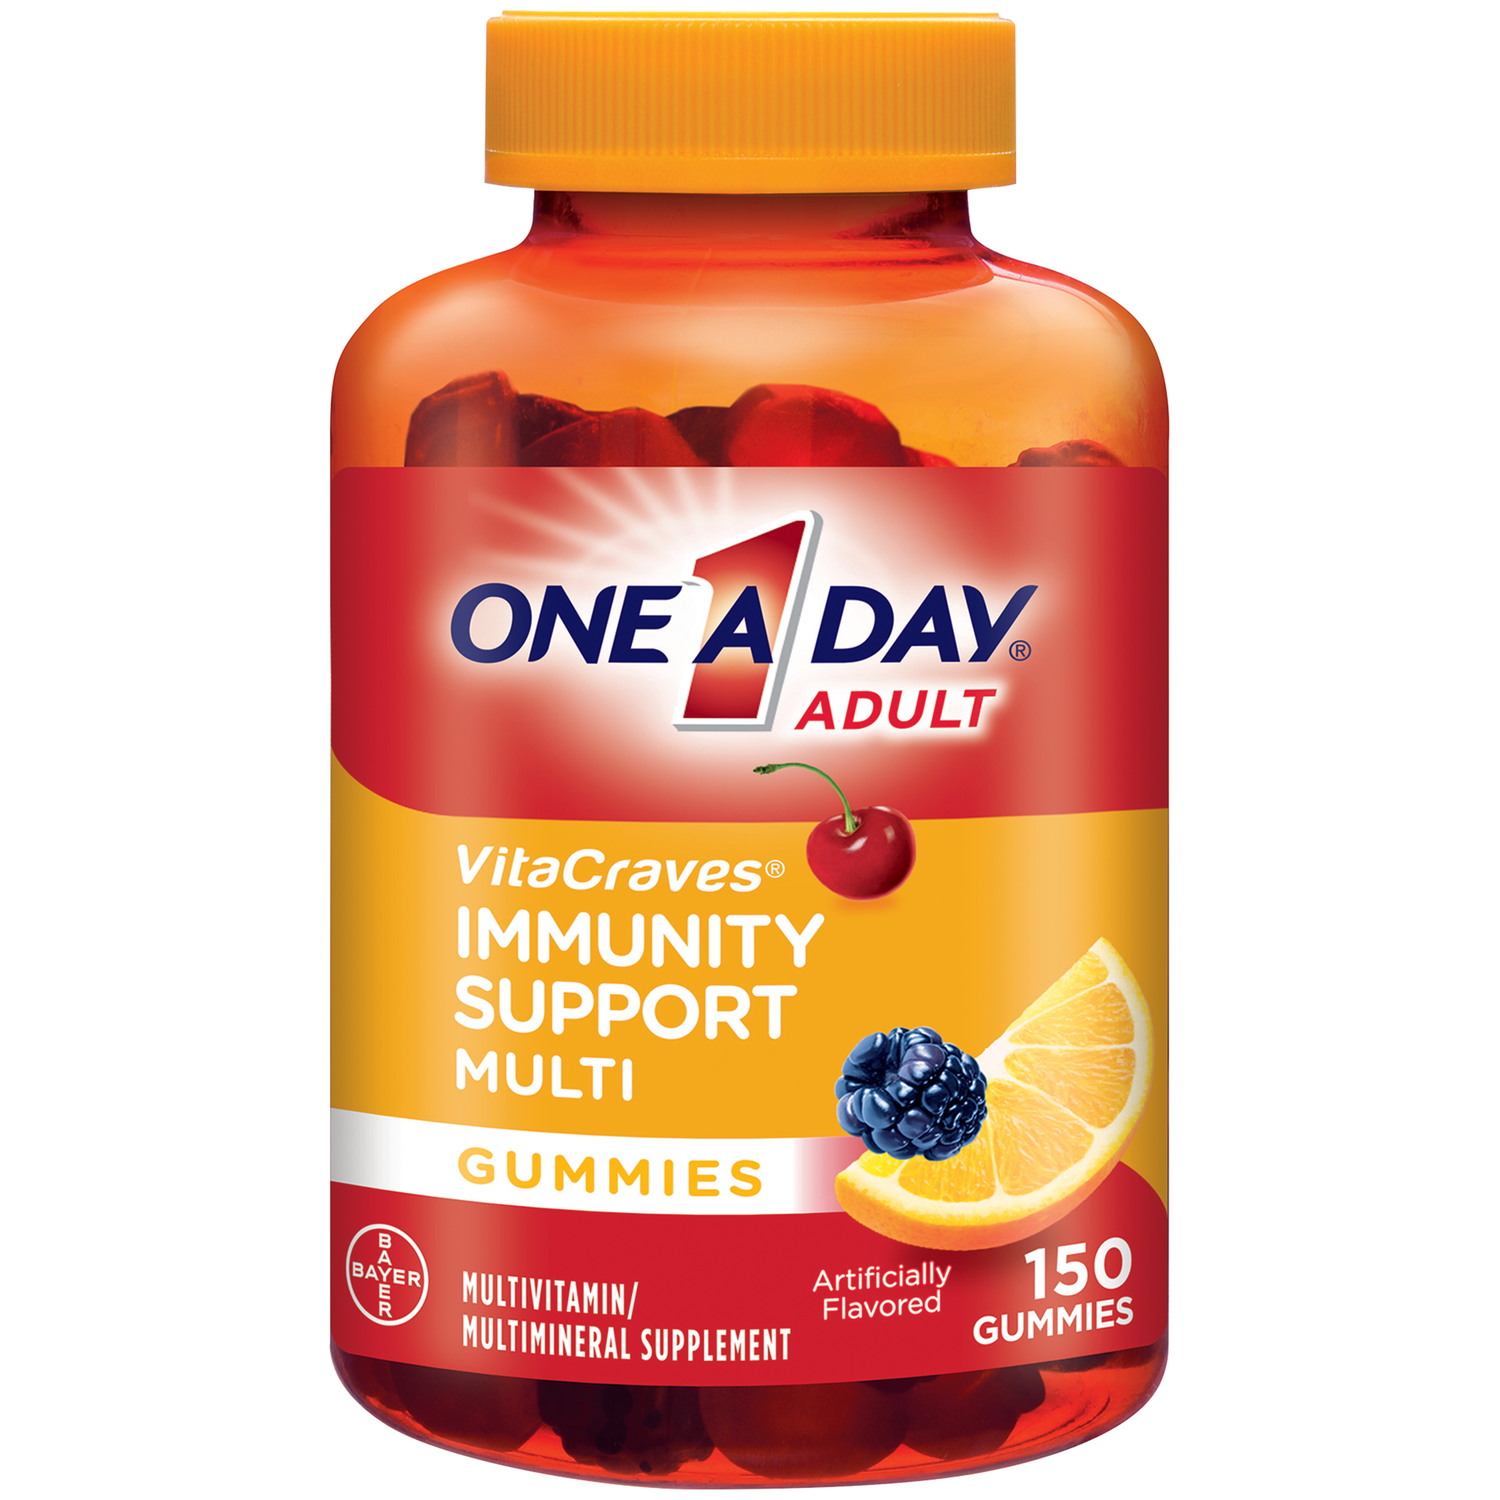 One A Day VitaCraves Multivitamin Gummy Immunity Support, 150 Count